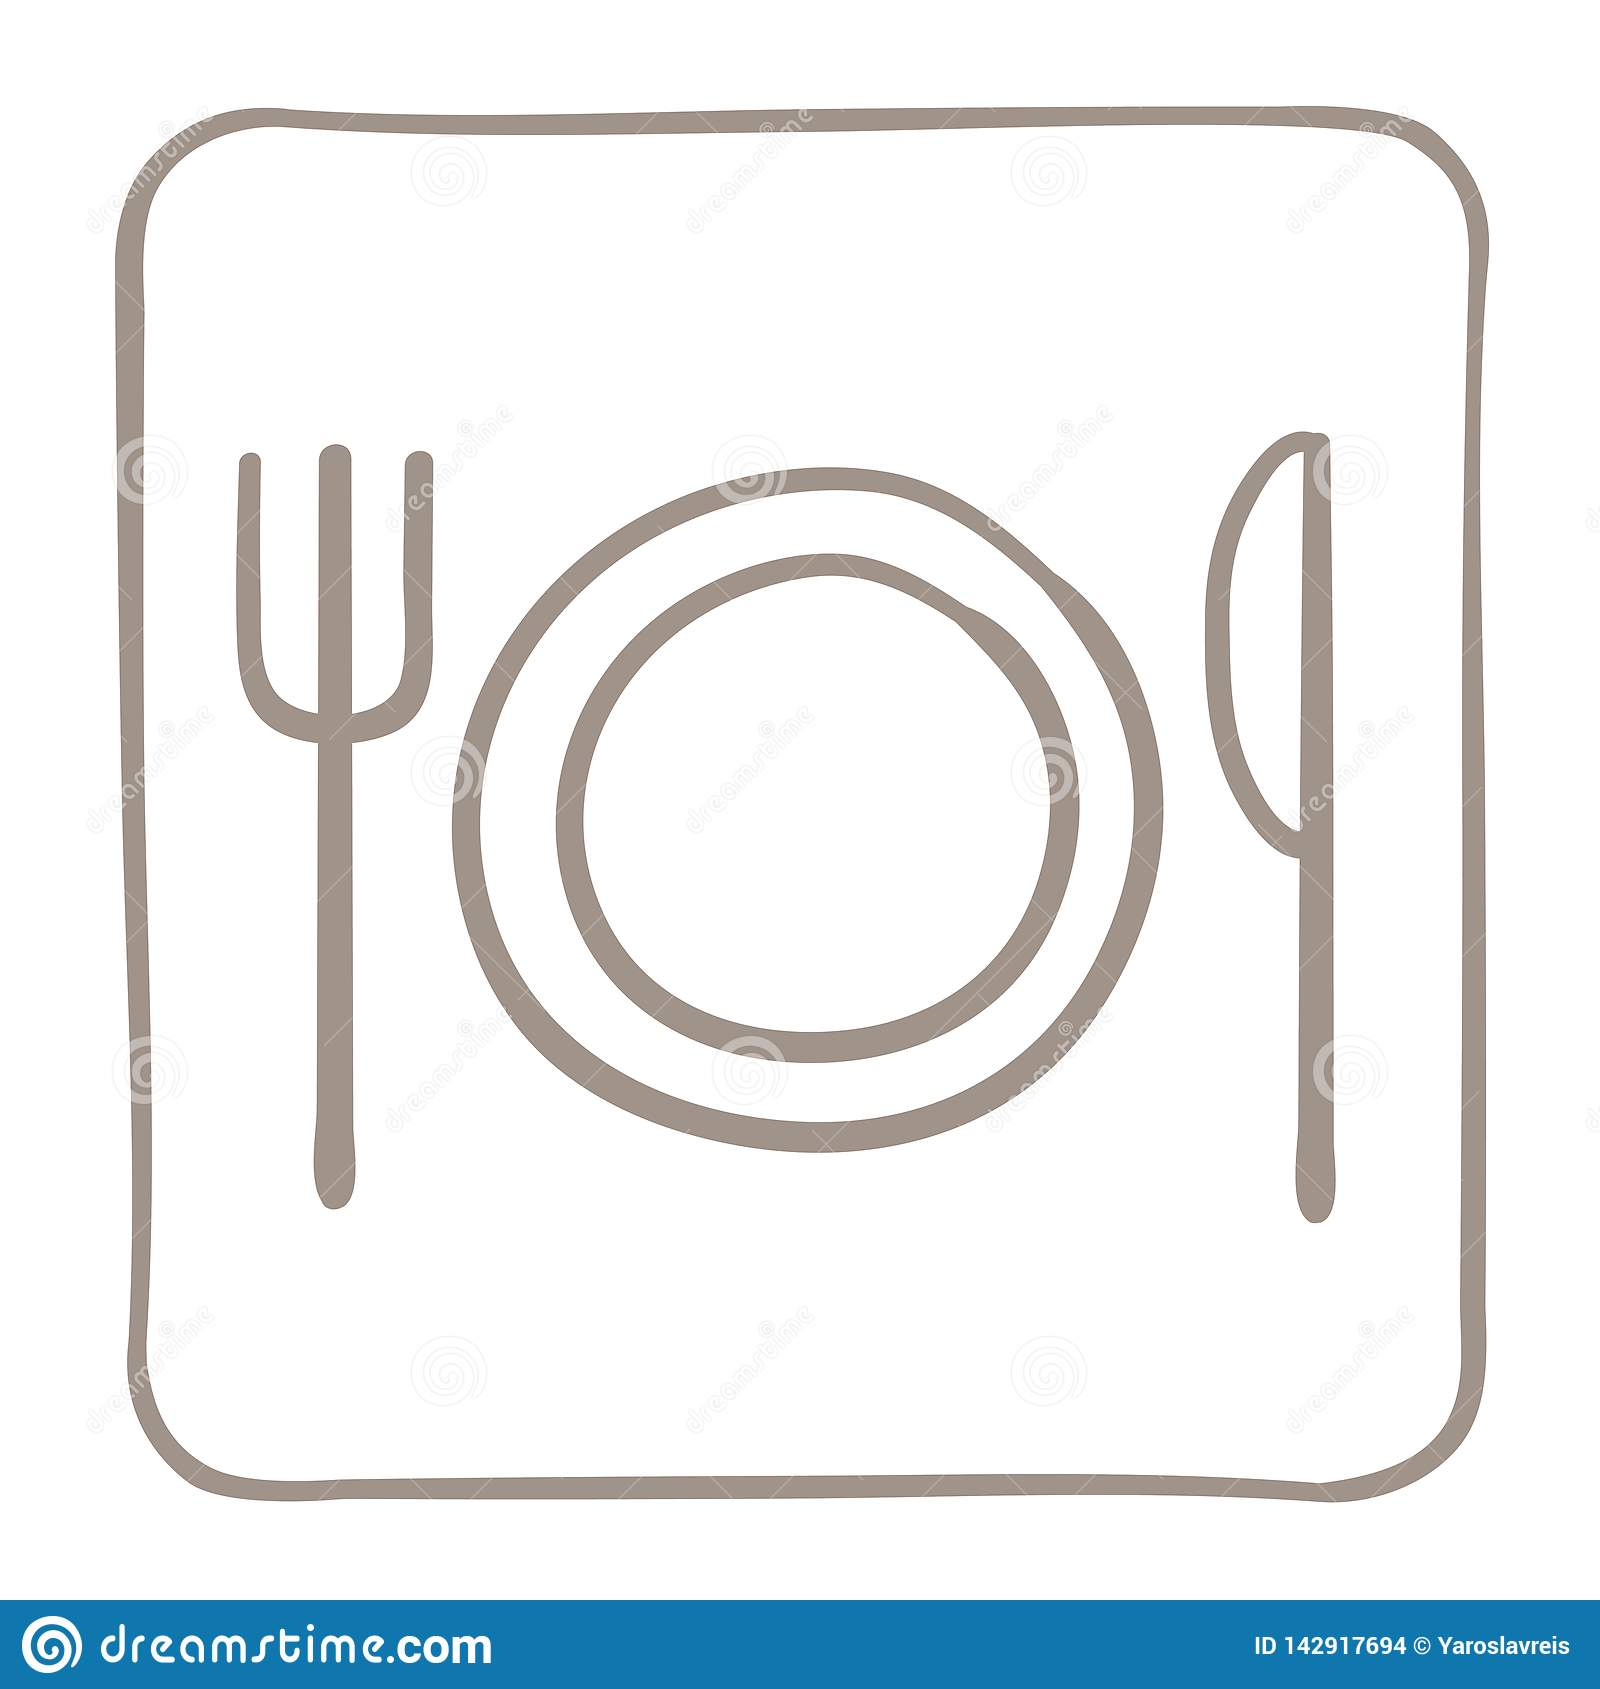 Cutlery Icon in a light brown frame. Vector graphics.